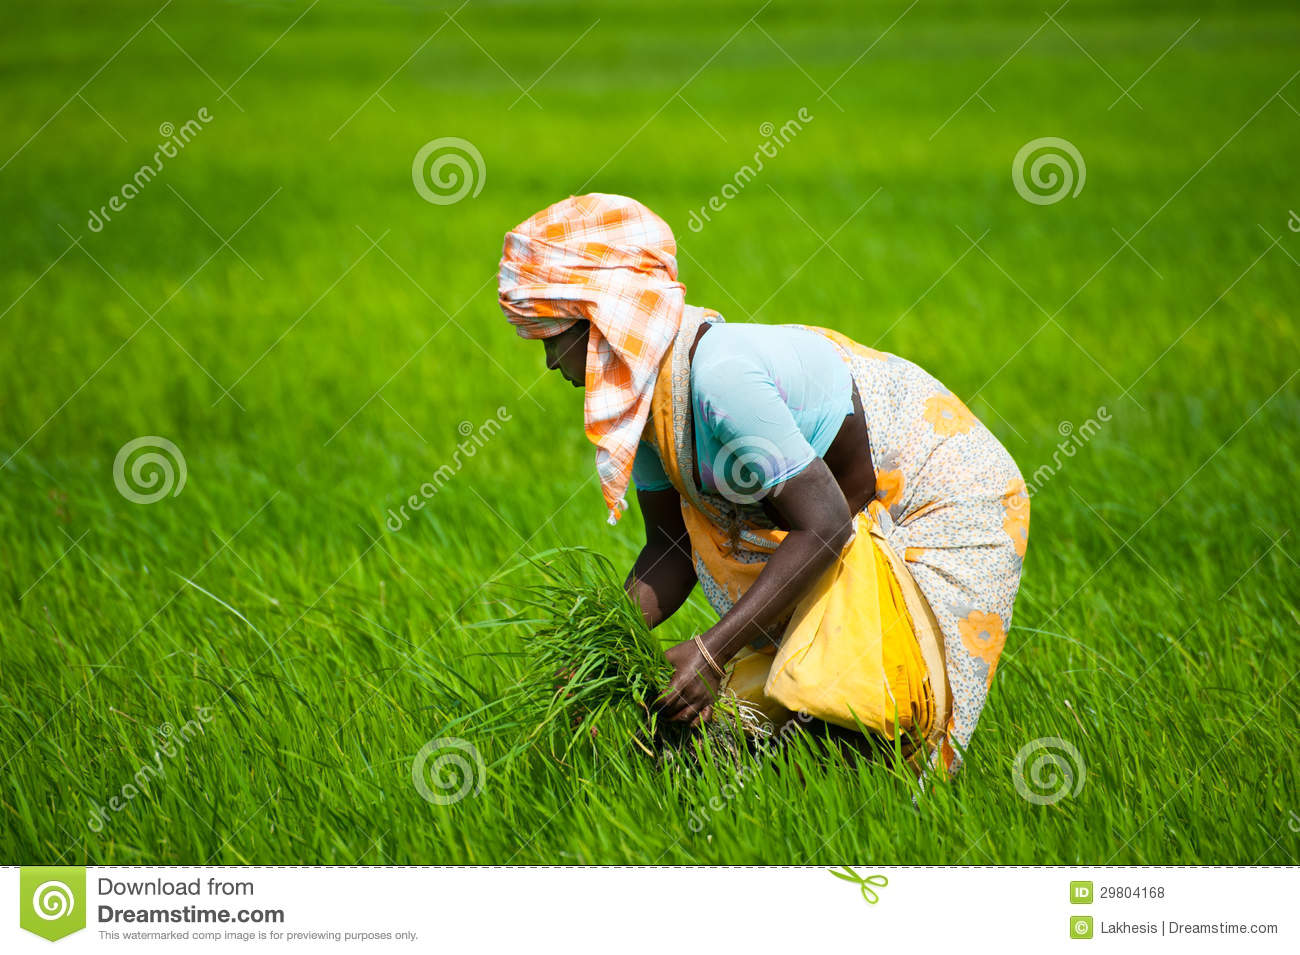 rice hindu single women Rice is one of the more commonly consumed grains, providing 20 percent of the world's energy from food chapati is a type of unleavened bread commonly consumed by people when they eat indian.